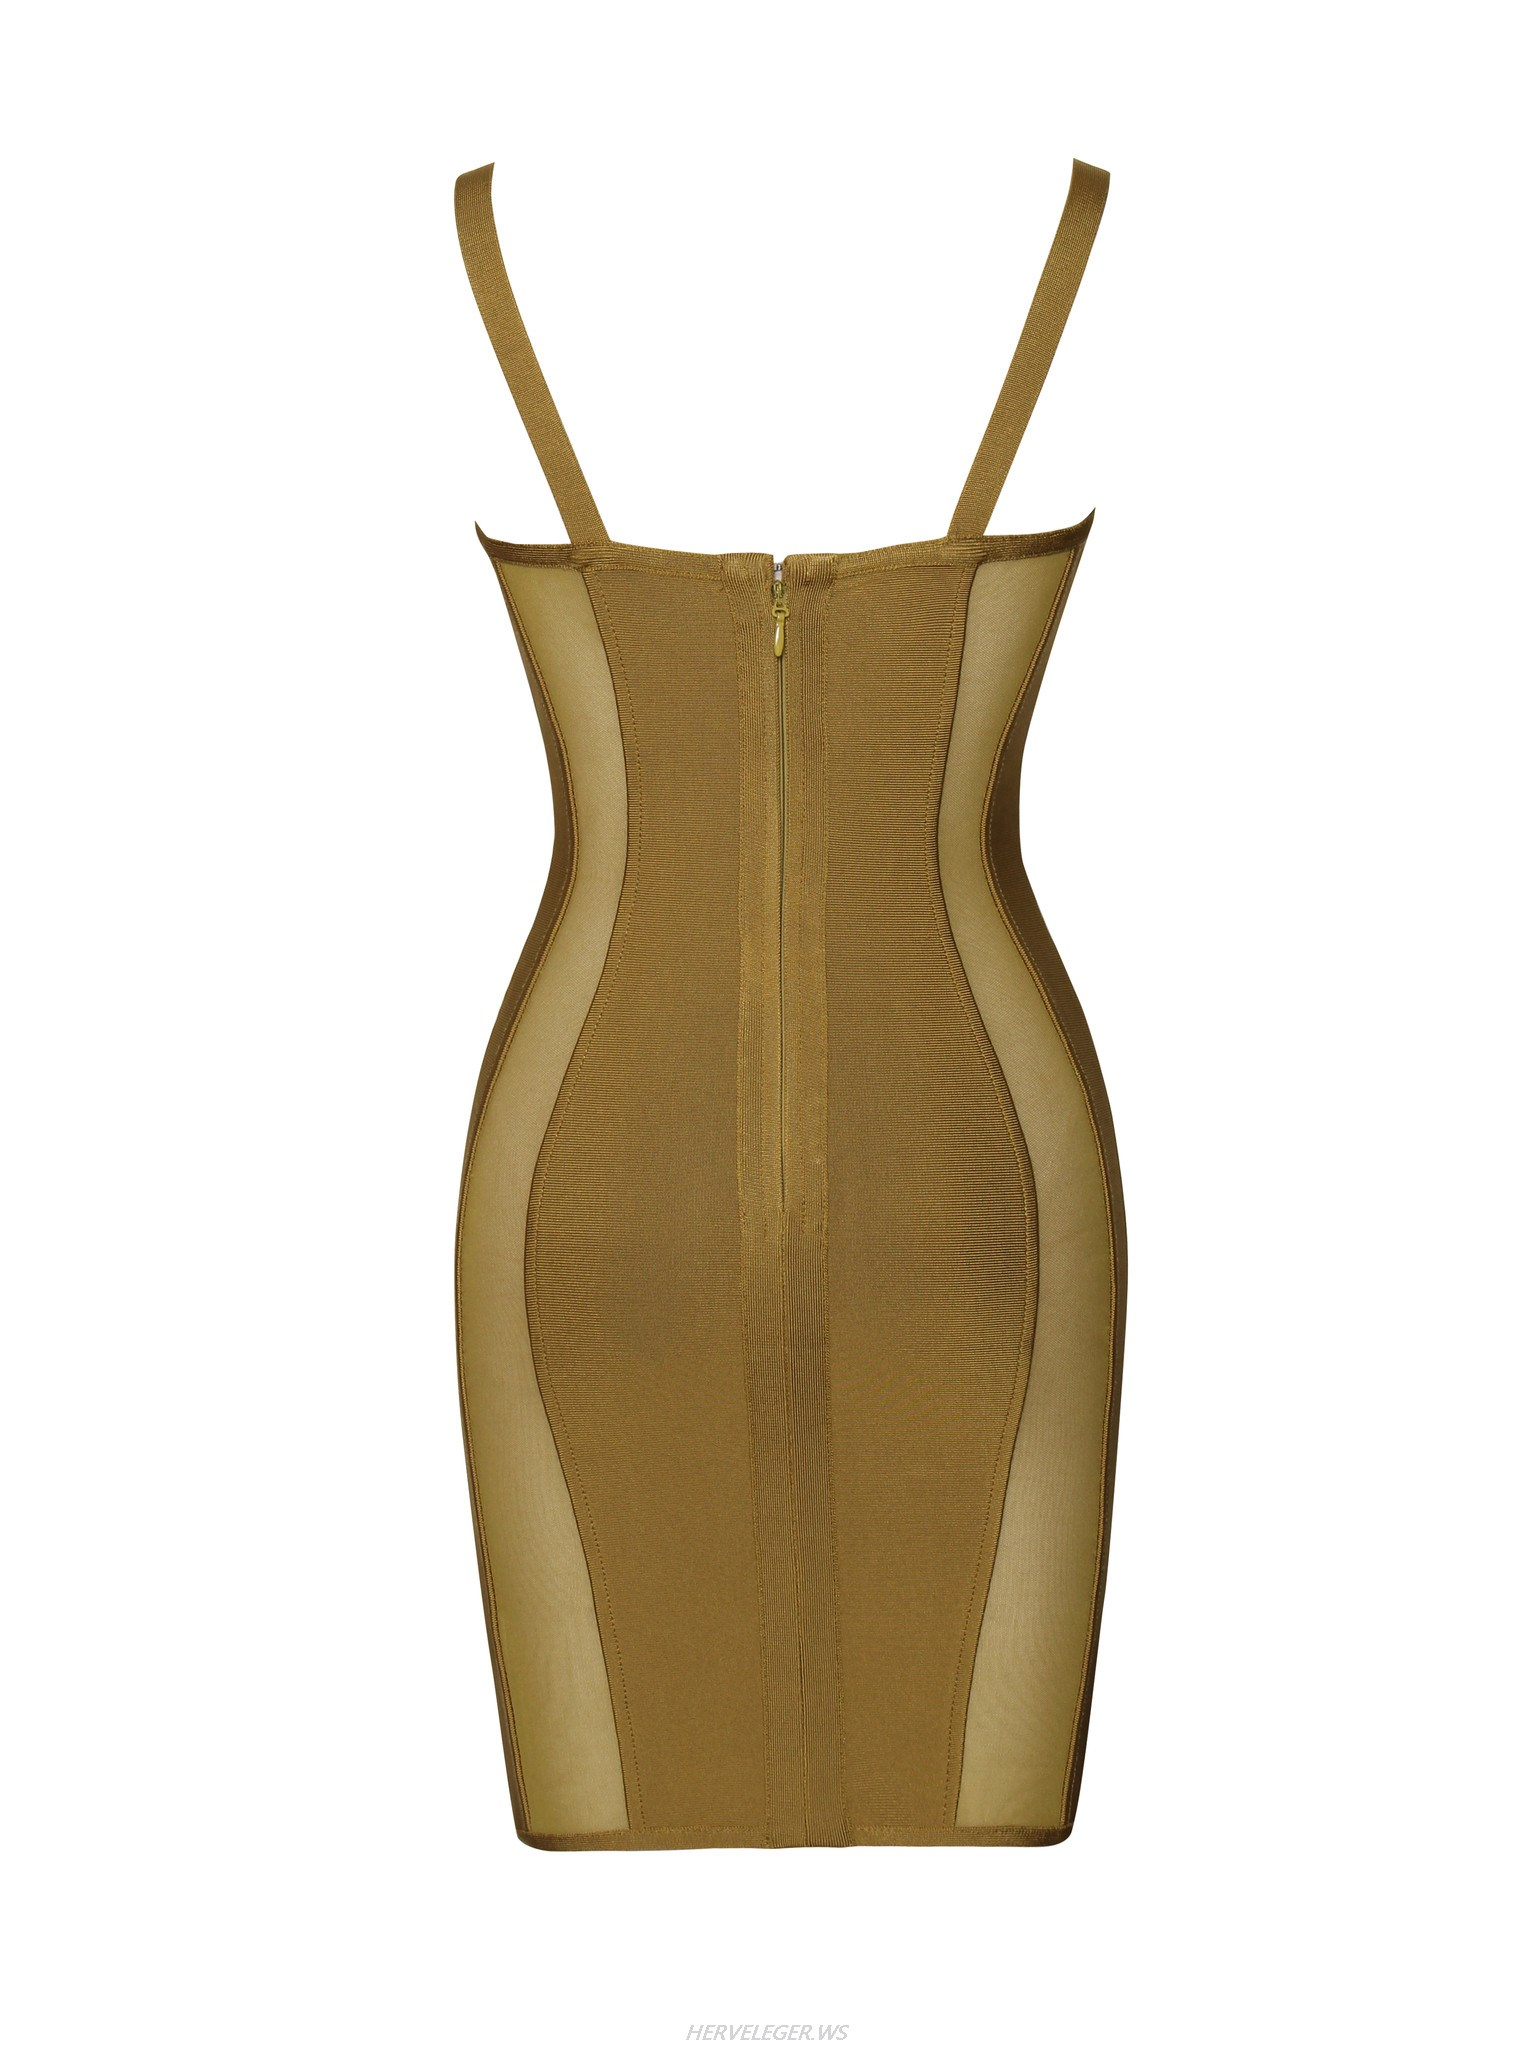 Herve Leger Yellow Sweetheart Top Sheer Cut Out Dress